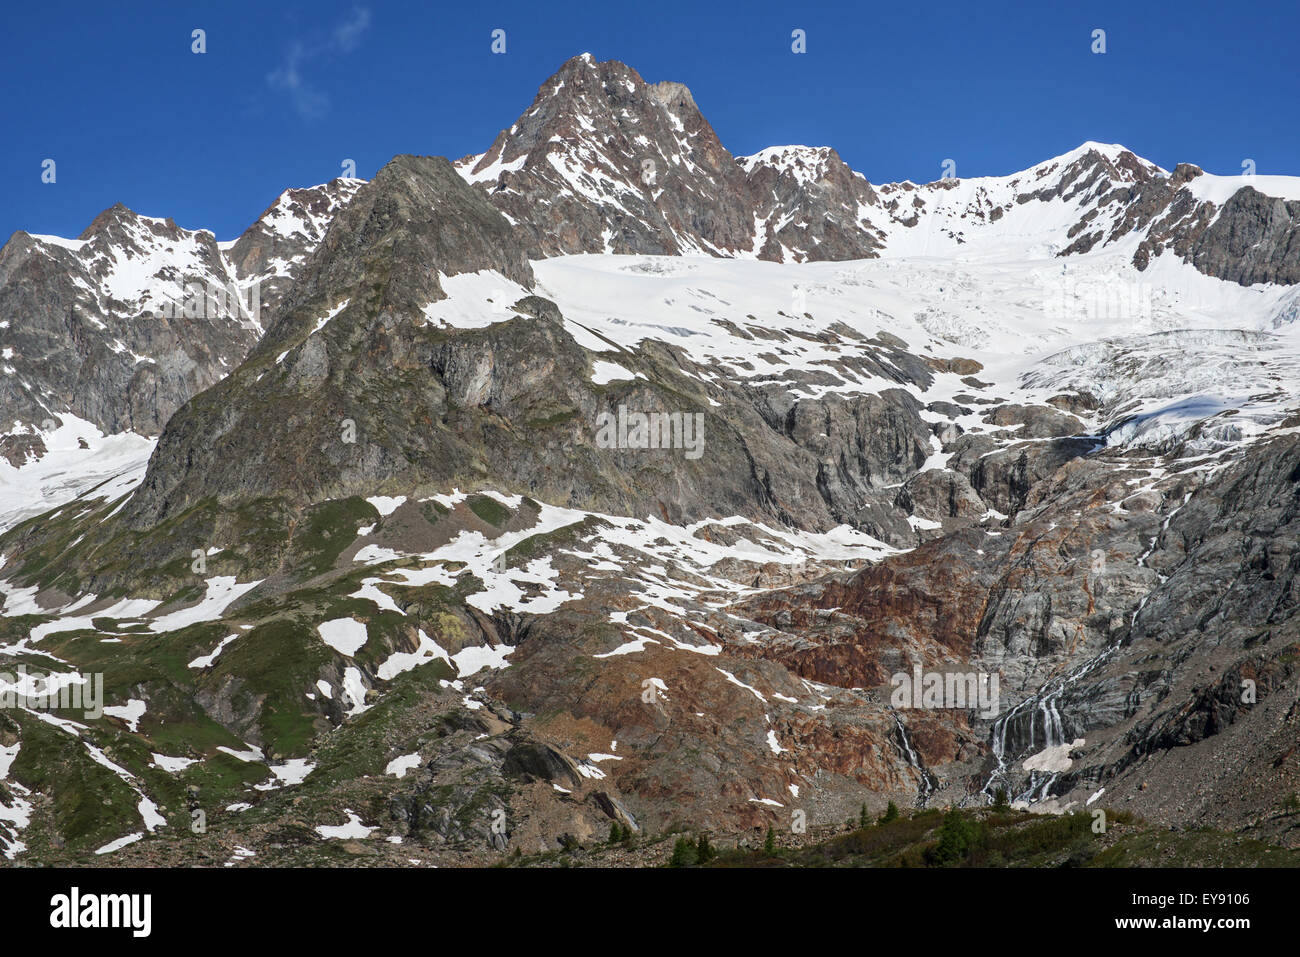 Retreating glacier on the Aiguille des Glaciers in the Mont Blanc massif in Val Veny in the Italian Alps, Italy Stock Photo